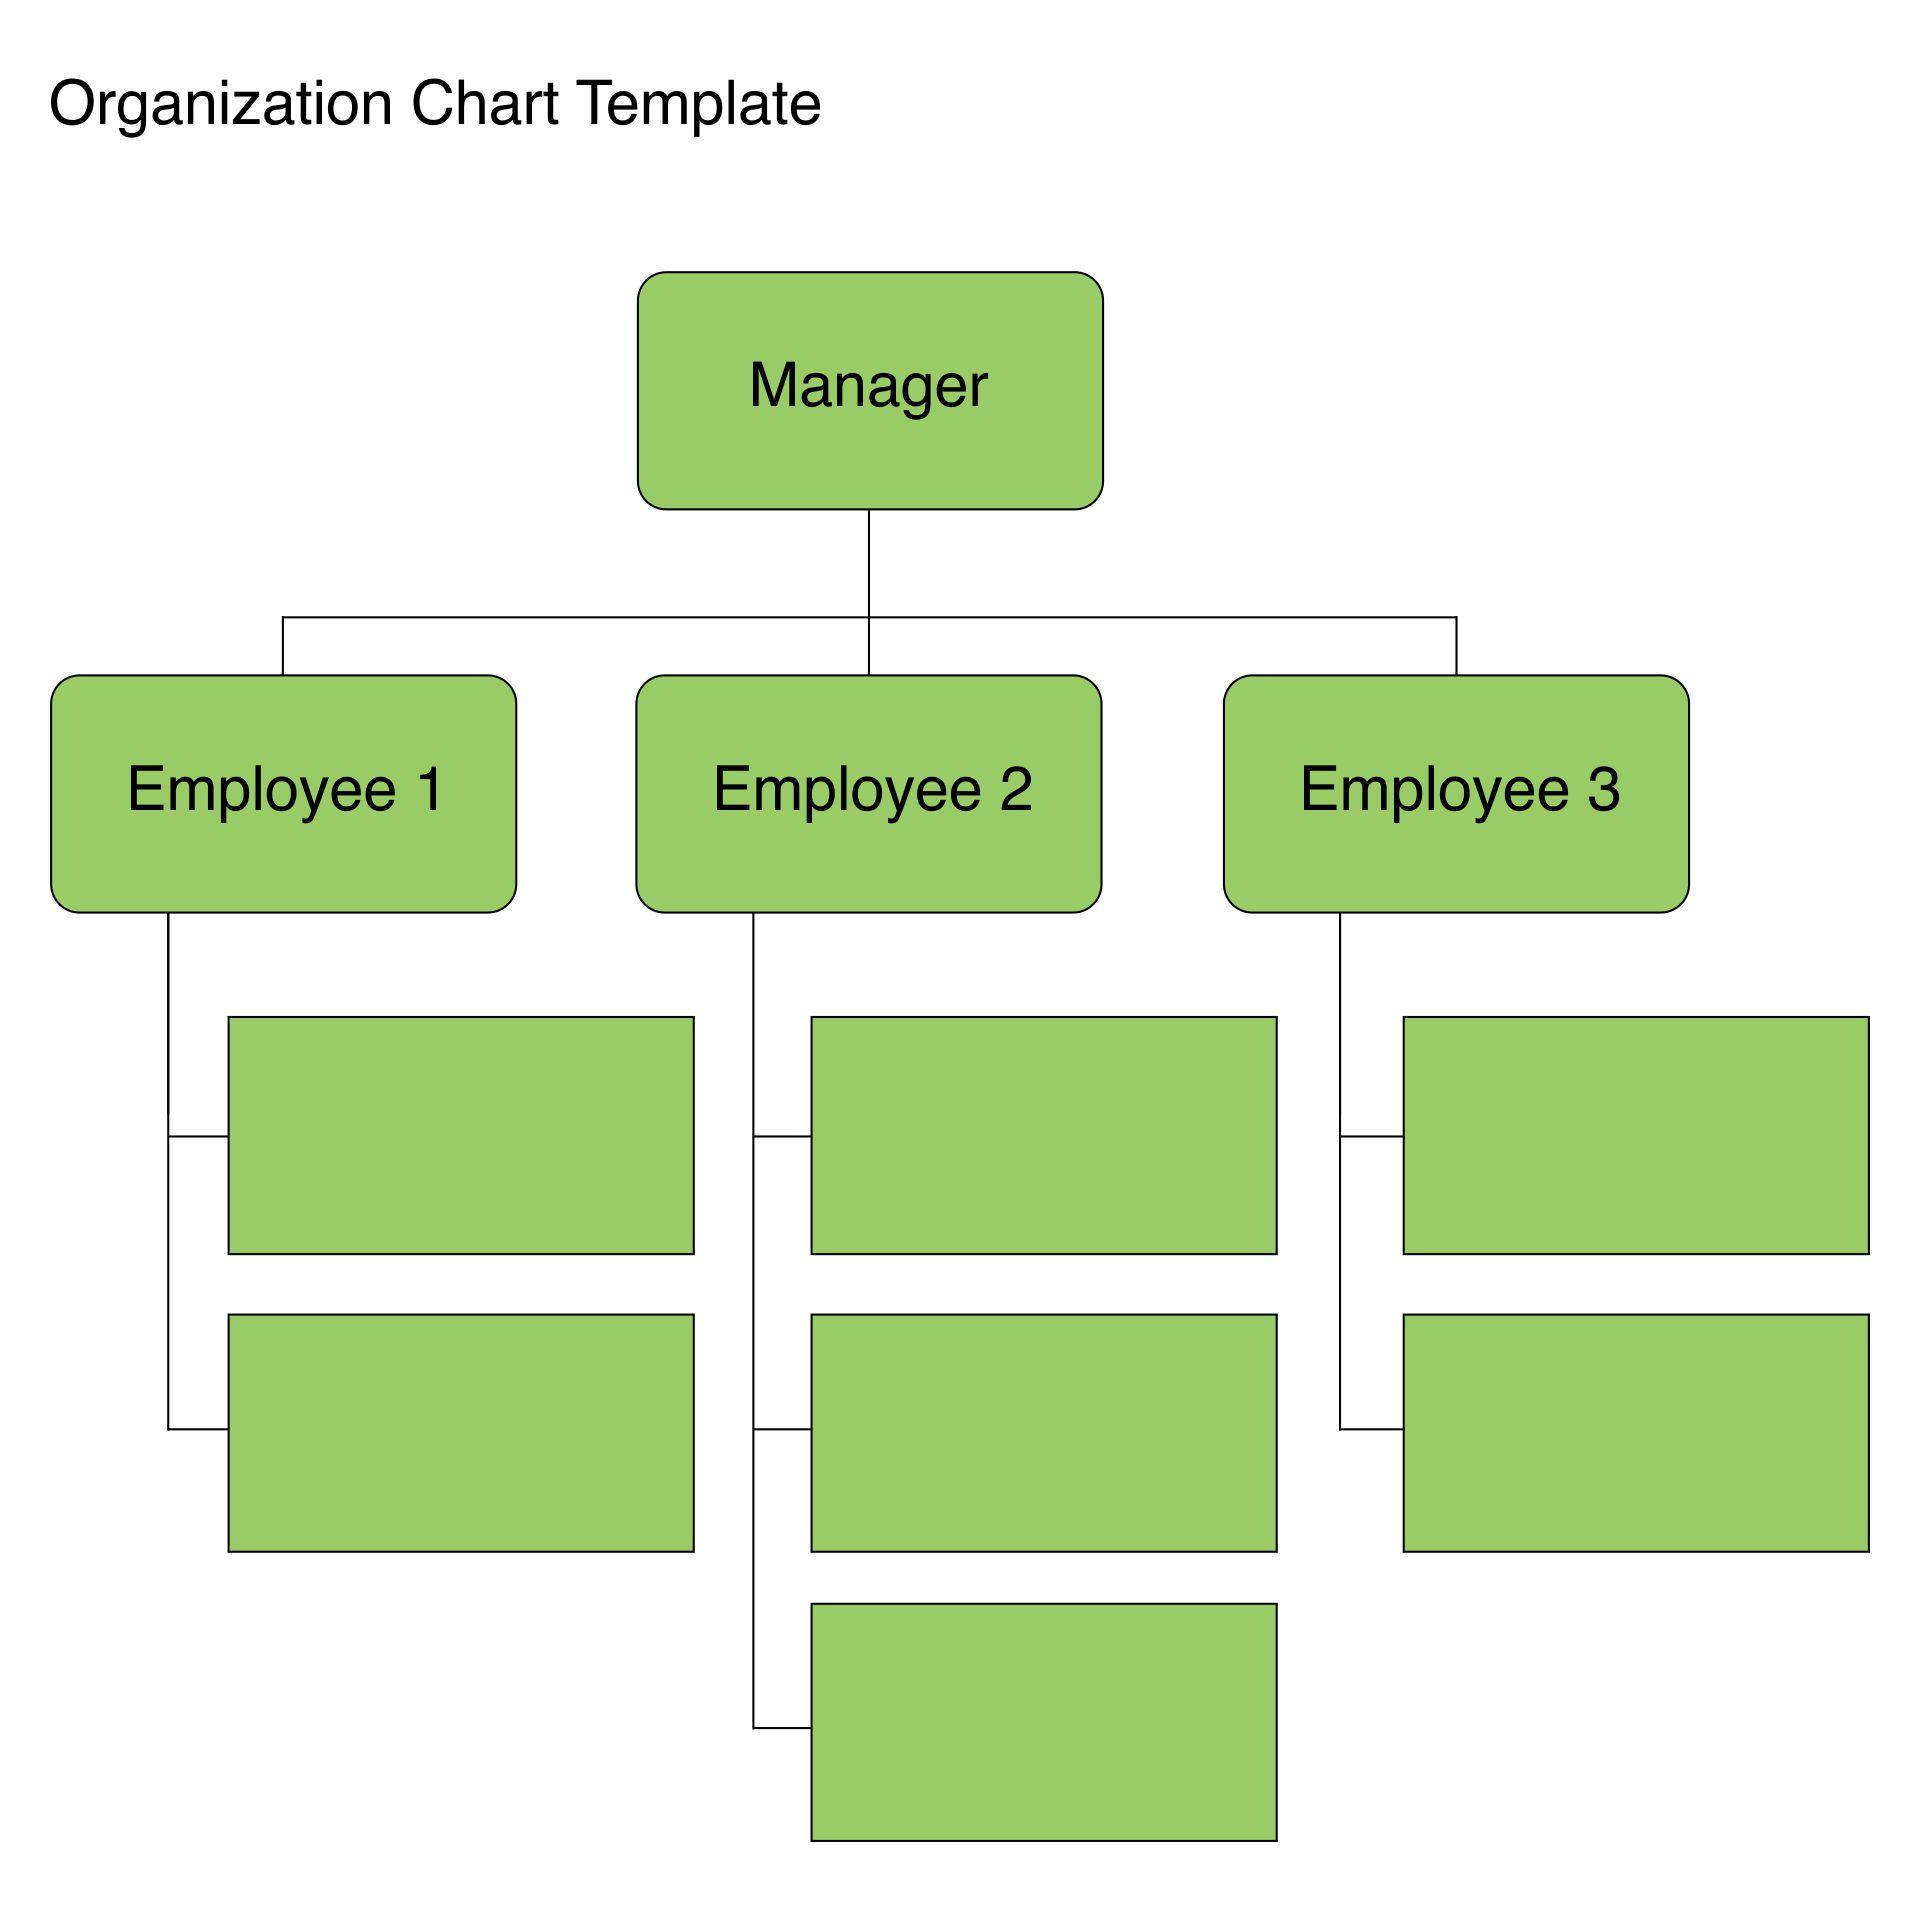 Table of Organization Chart Template